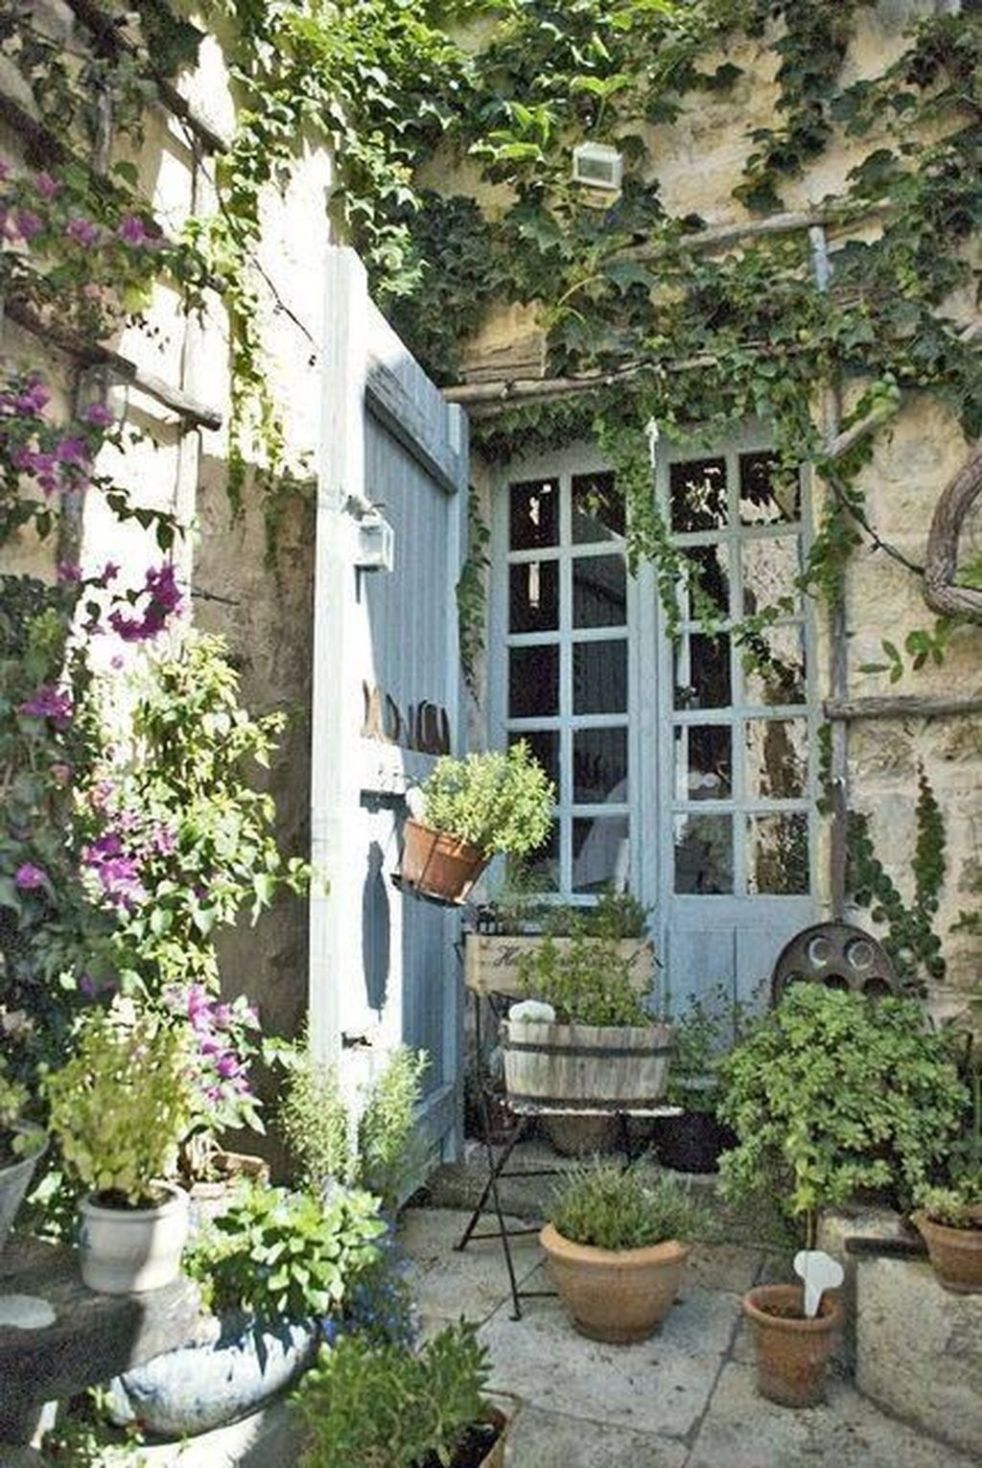 Inspiring French Country Garden Décor Ideas 6  French country